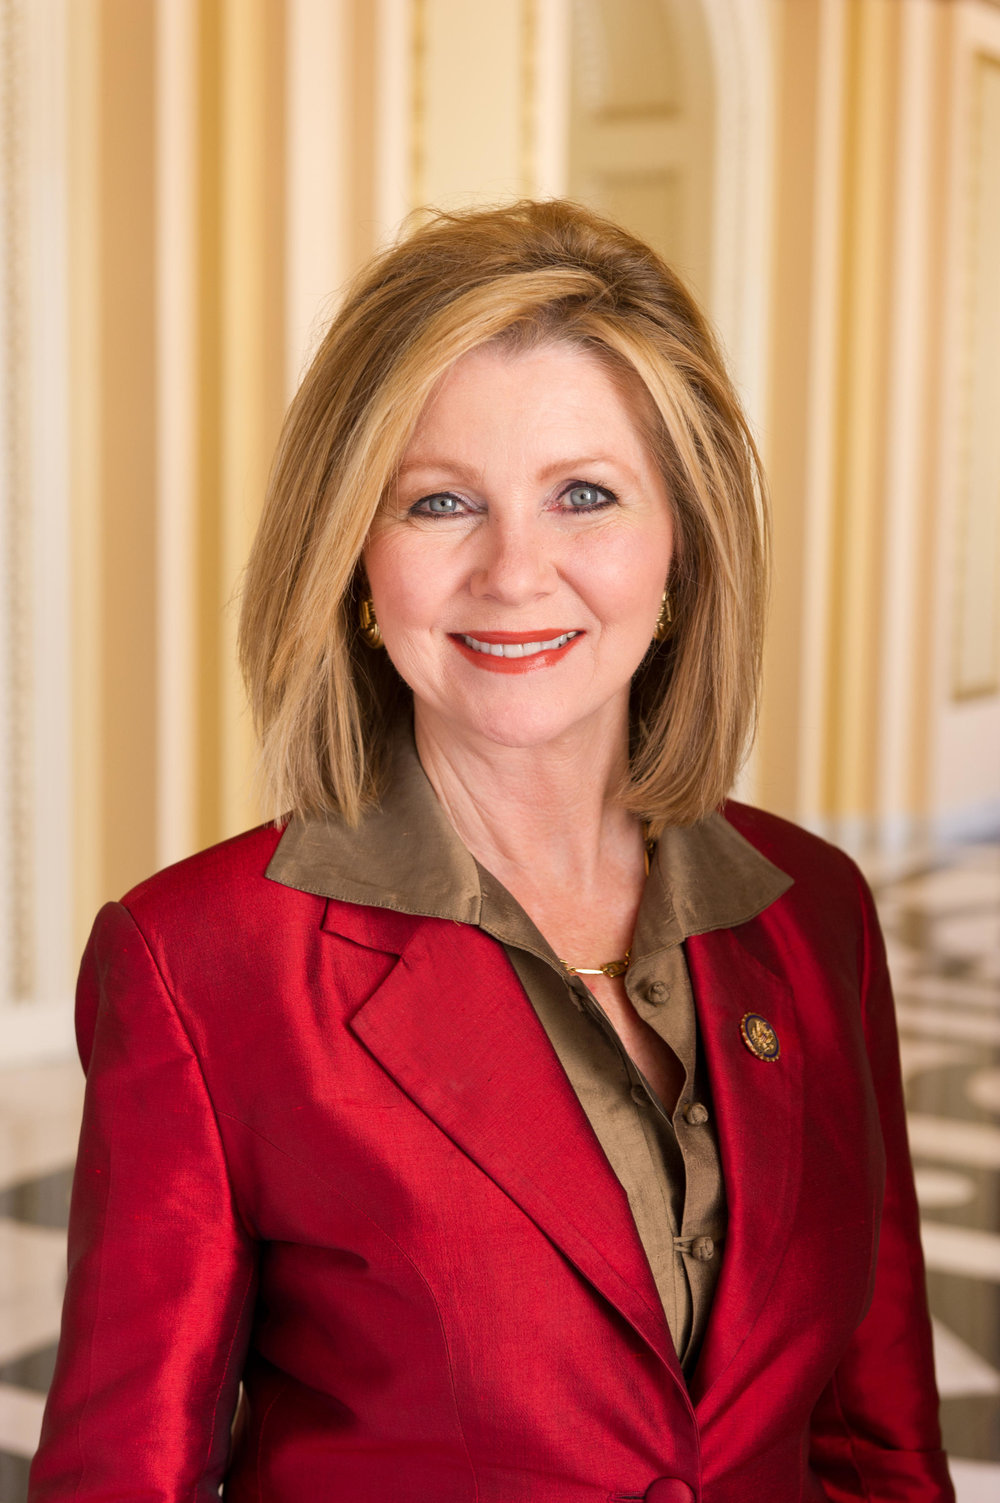 Marsha_blackburn_congress.jpg